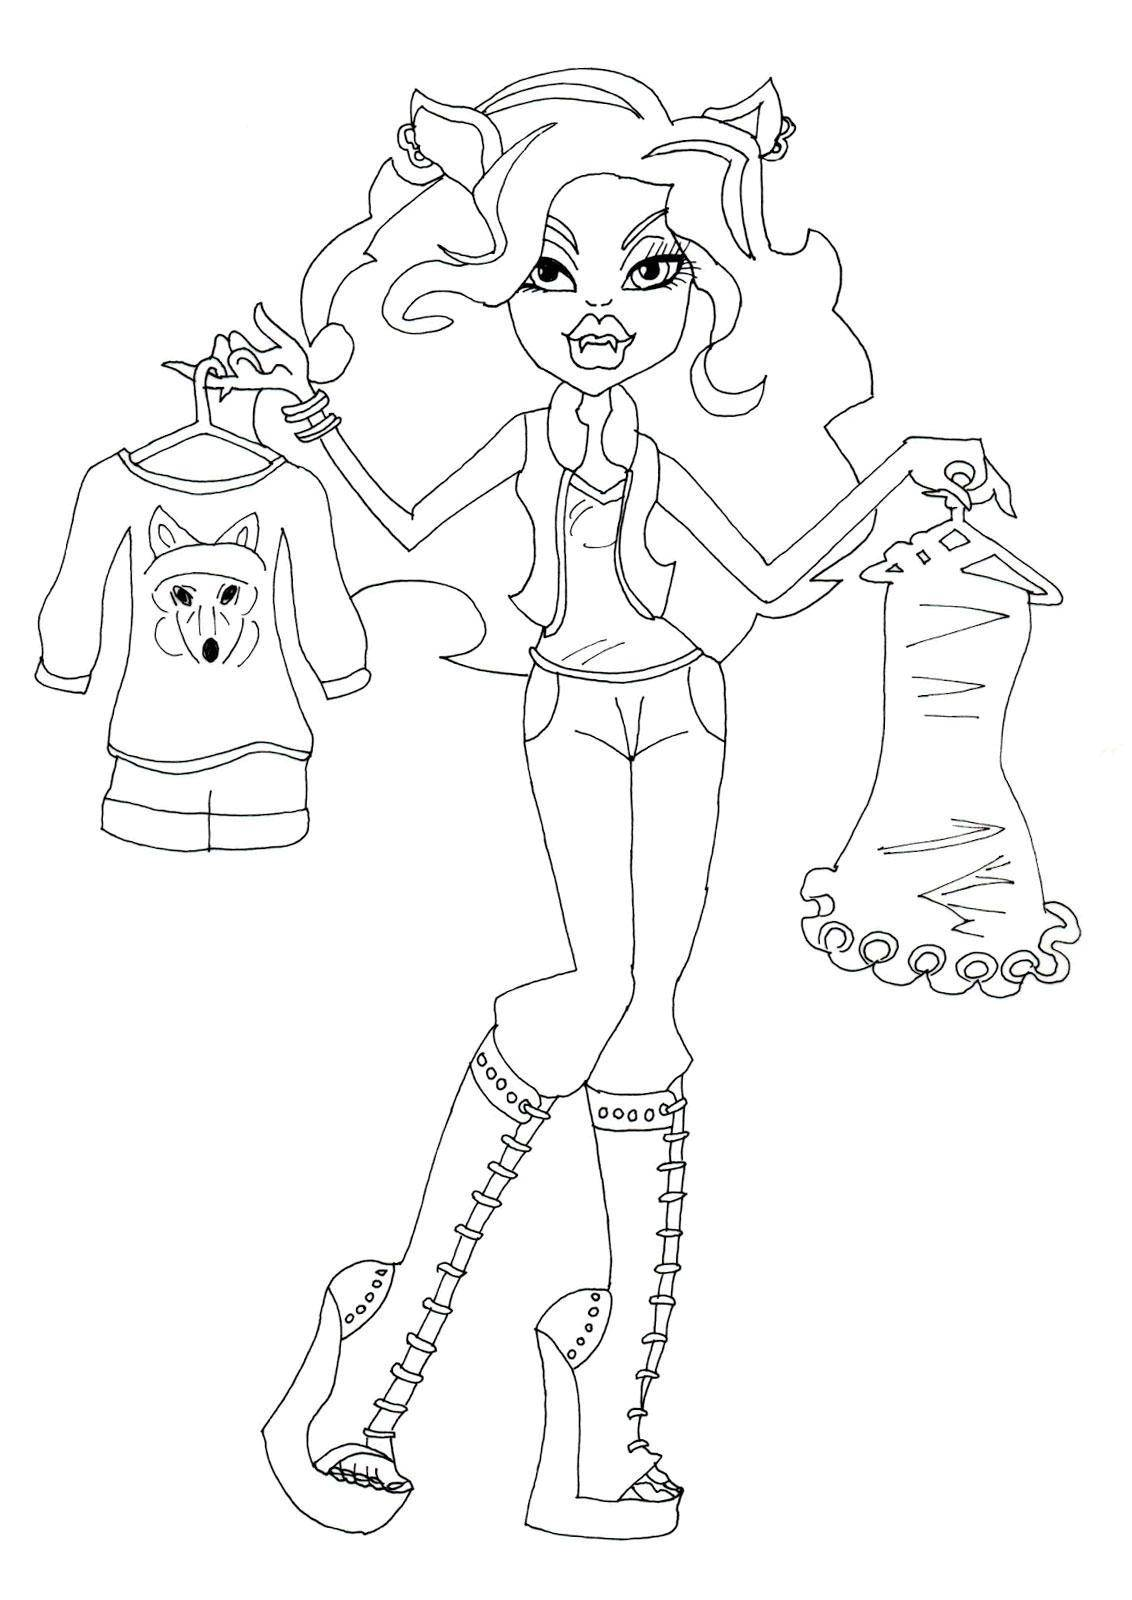 Coloring The choice of attire. Category school of monsters. Tags:  Monster High.